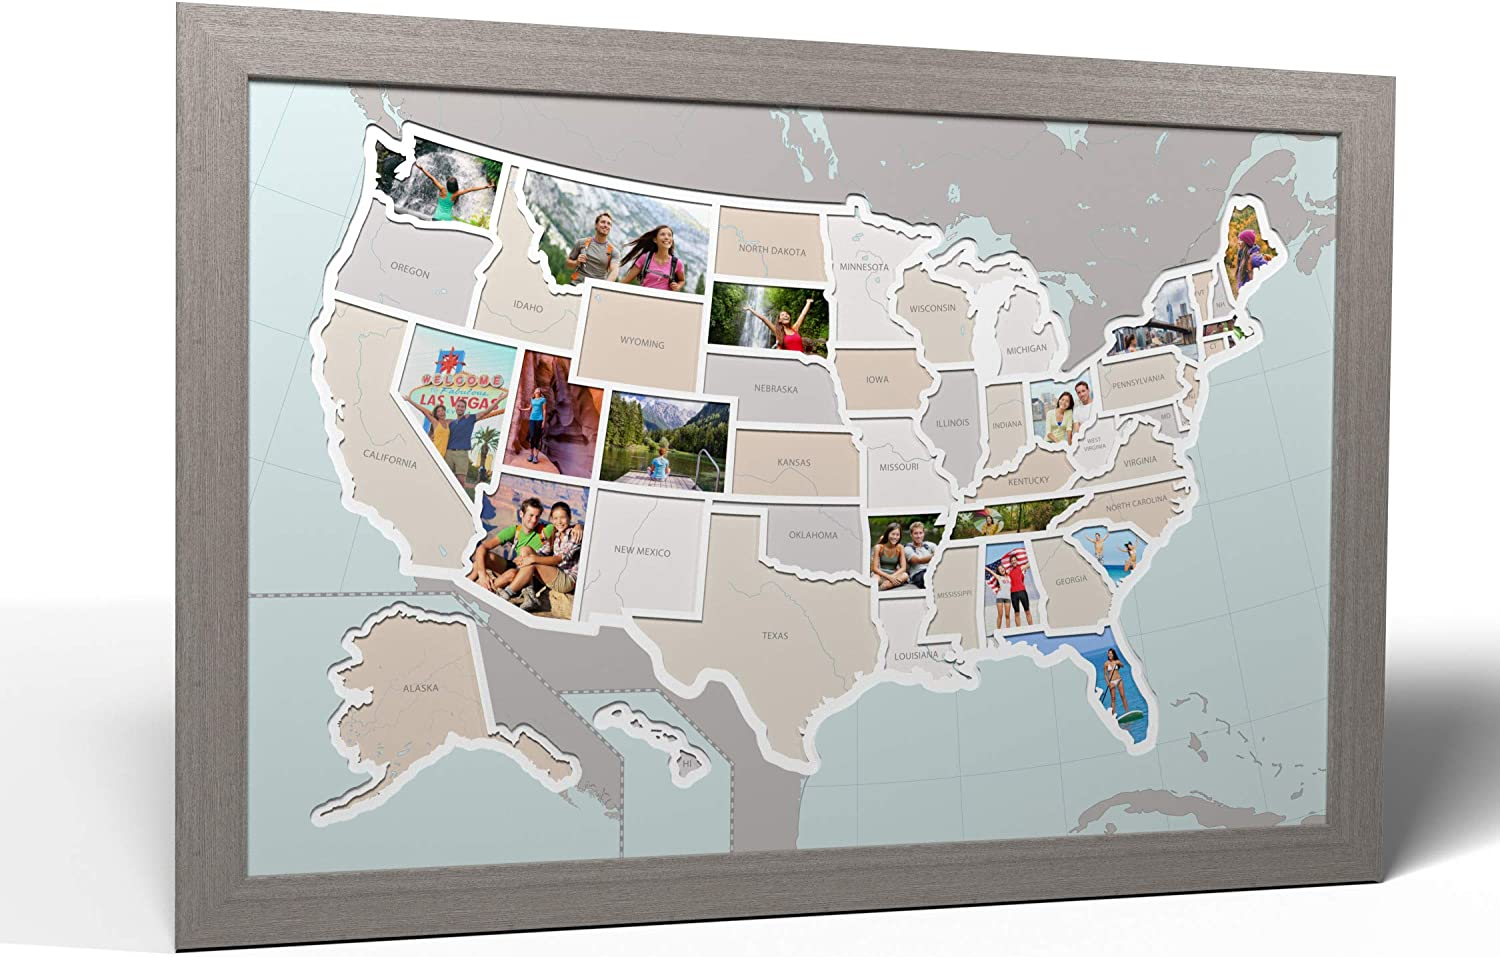 Us Map Picture Frame Amazon.com: Thunder Bunny Labs 50 States USA Photo Map   Frame